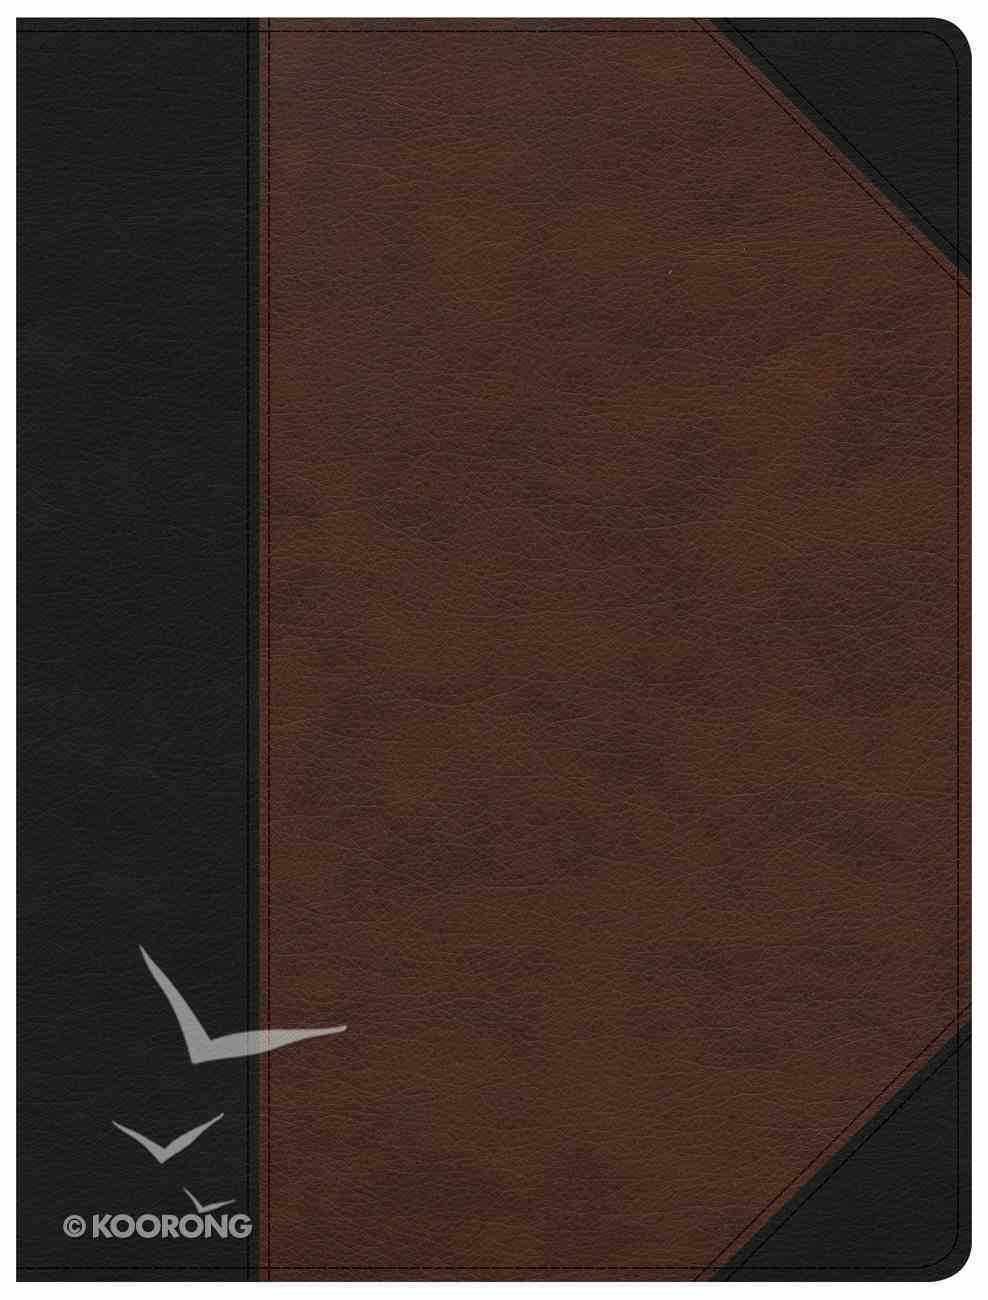 CSB Tony Evans Study Bible Black/Brown (Black Letter Edition) Imitation Leather